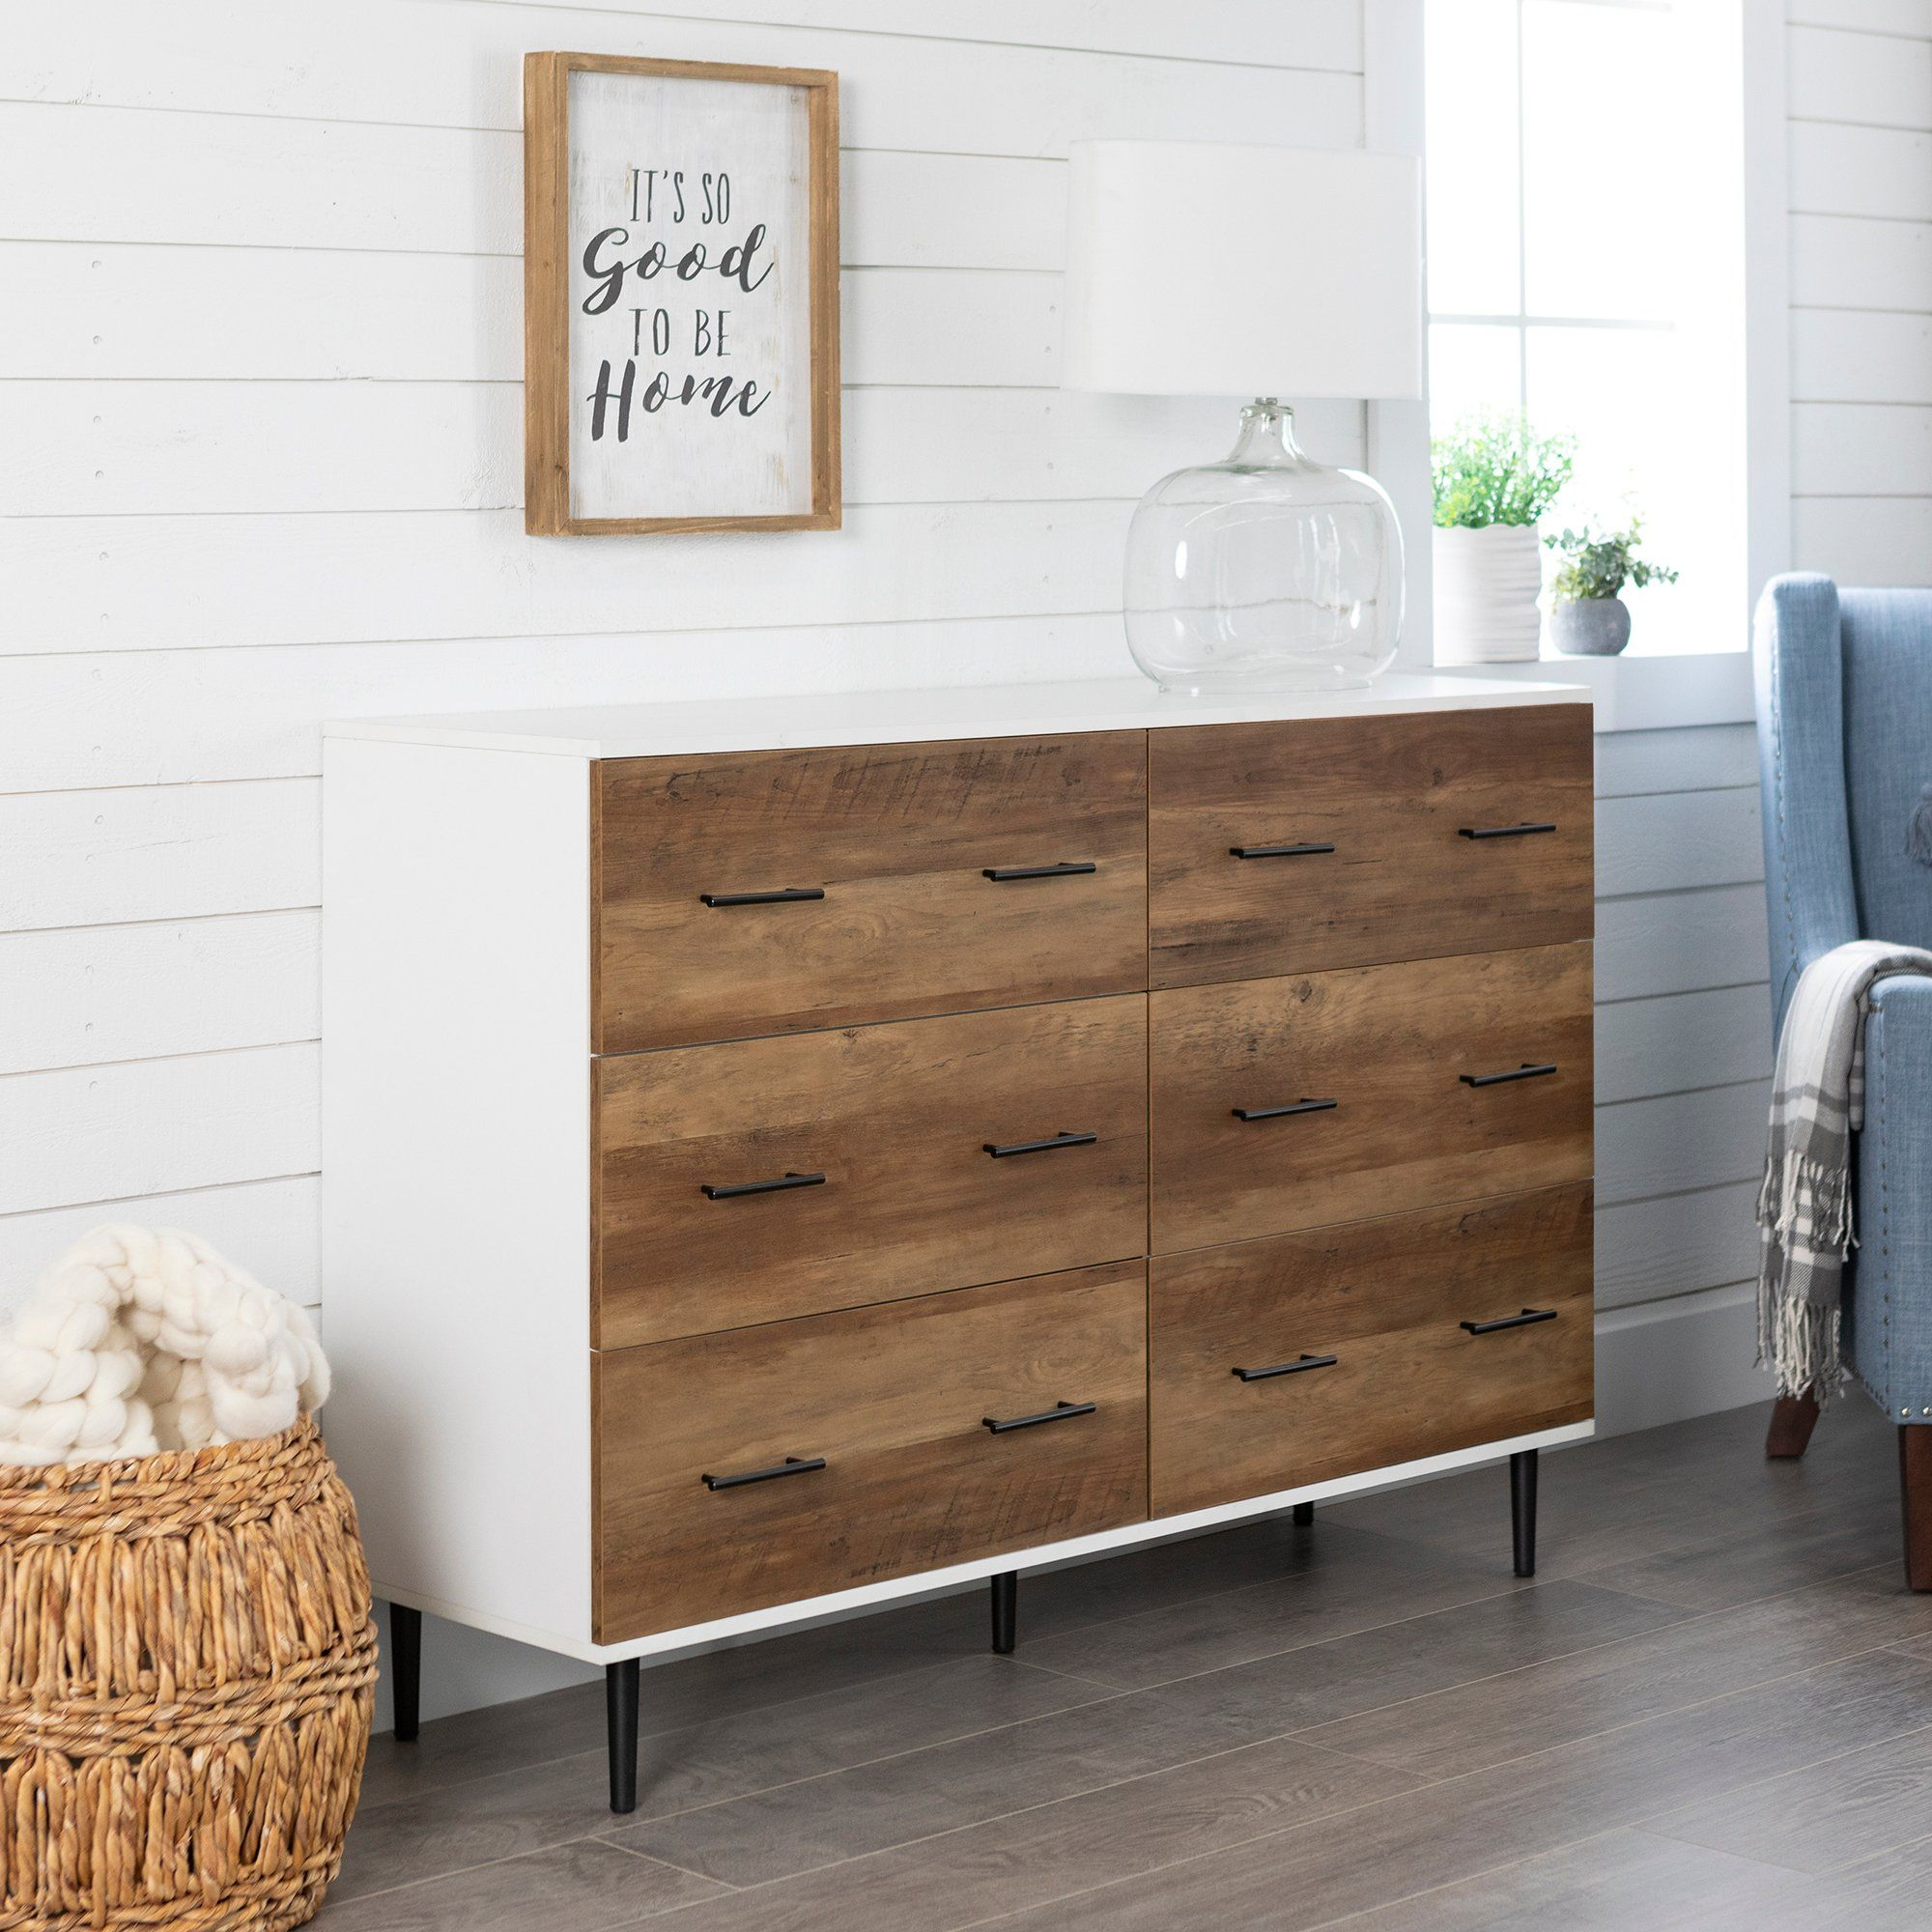 Contemporary White And Rustic Oak Dresser Savanna Light Wood Dresser Shabby Chic Dresser Furniture